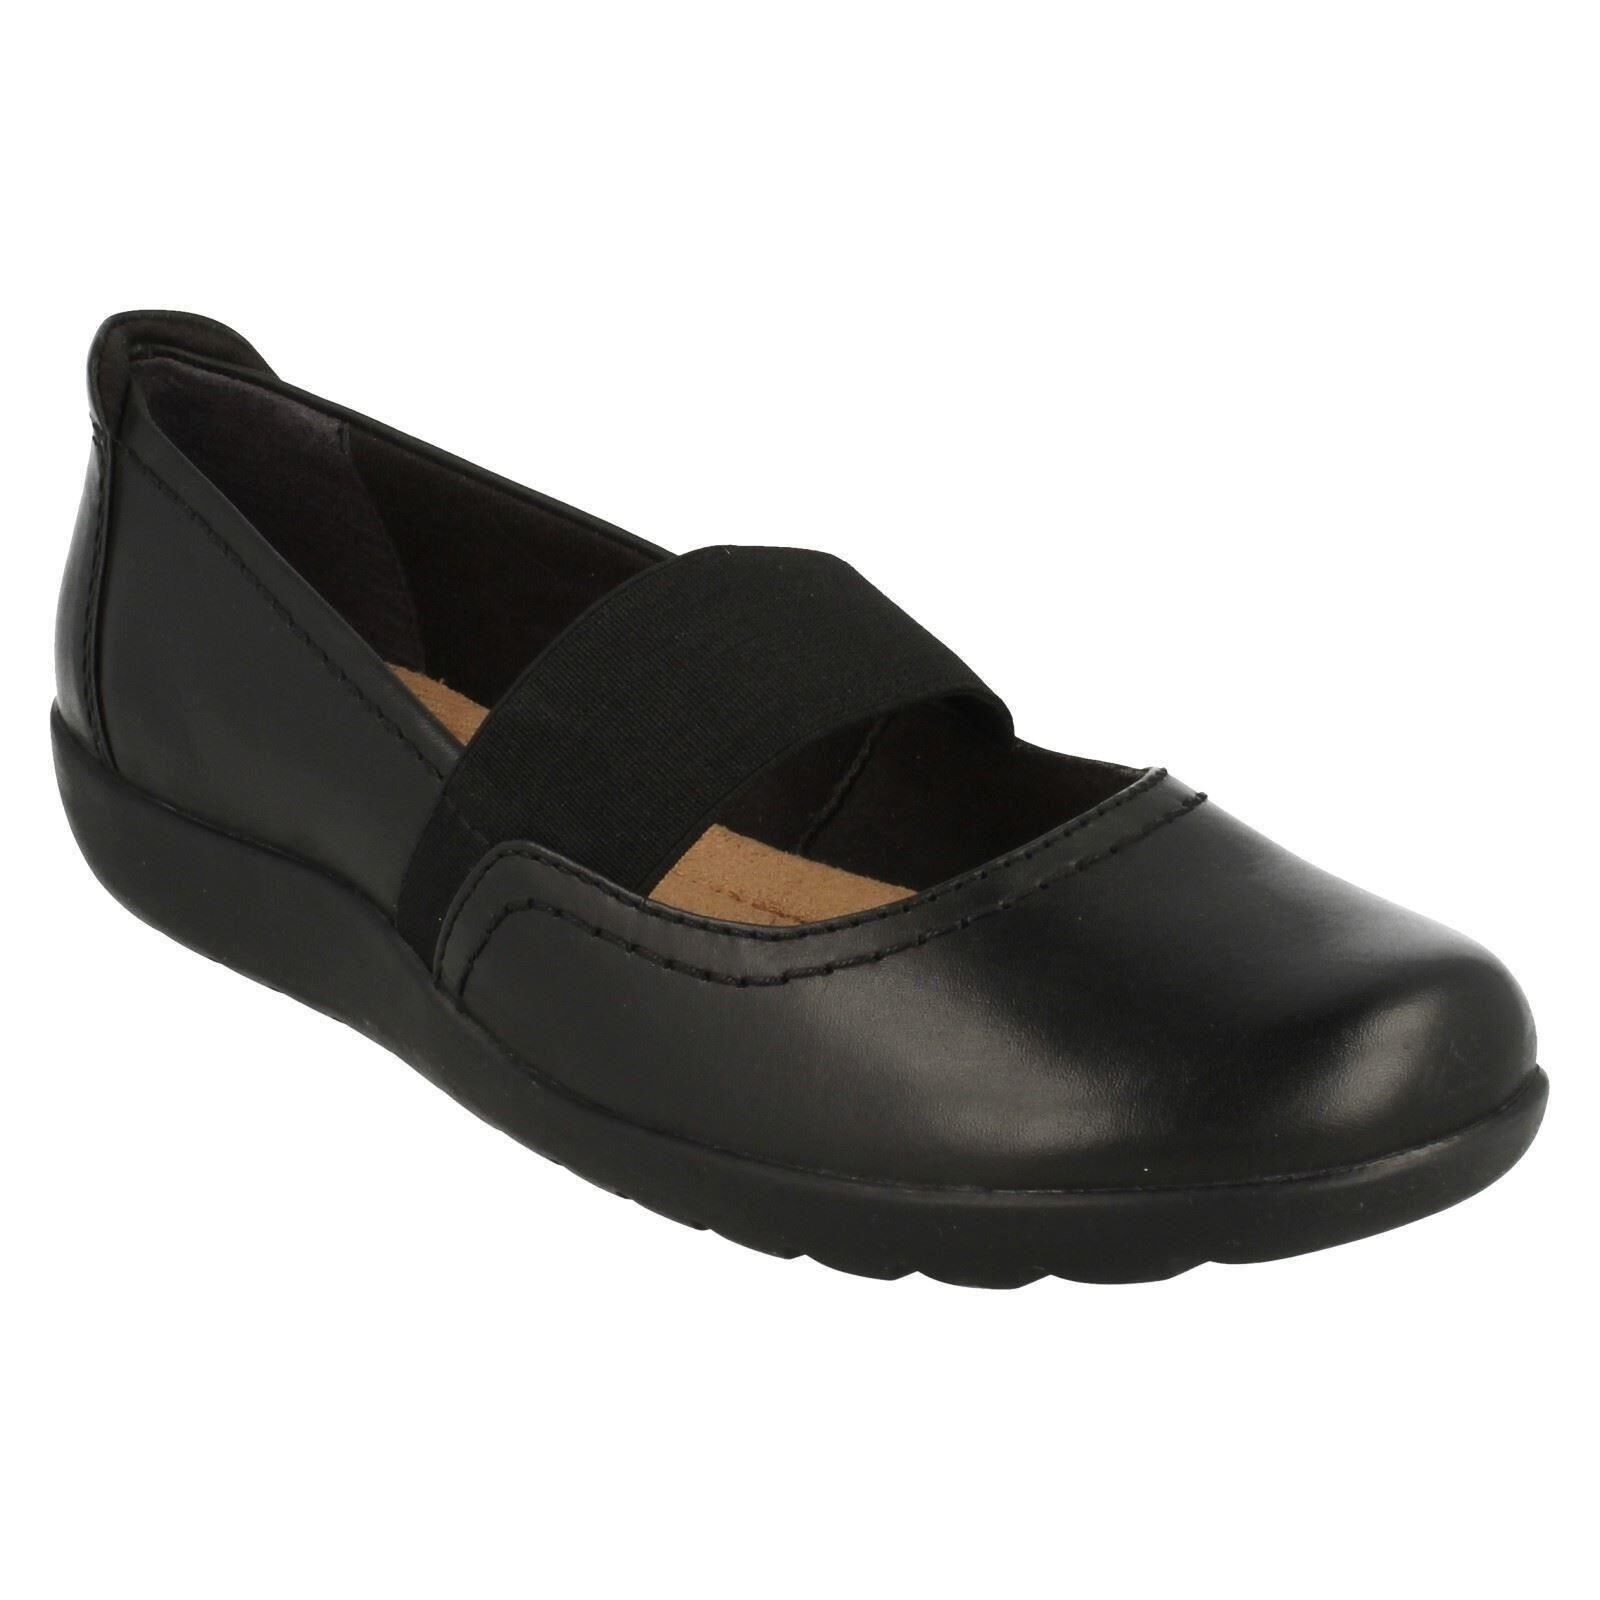 Medora ALLY Donna Clarks in Pelle Pelle Lavoro in Infilare Mary Jane Lavoro Pelle ... f06a69